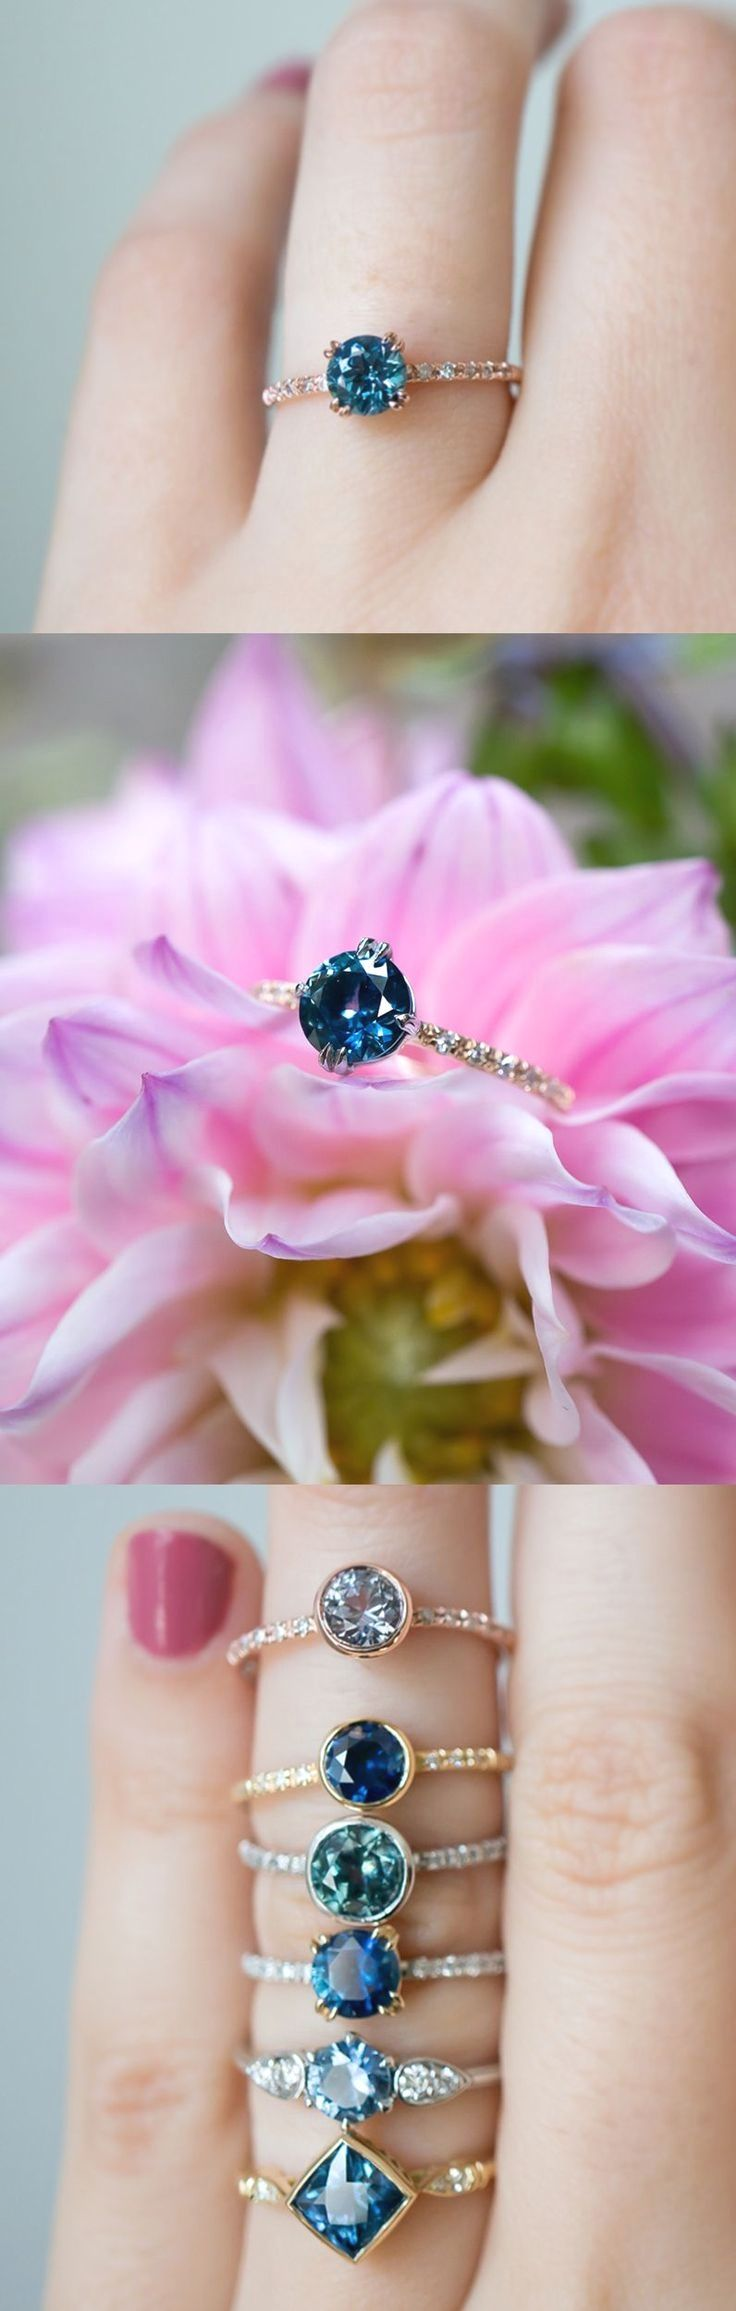 237 best Accessories images on Pinterest | Engagement rings ...